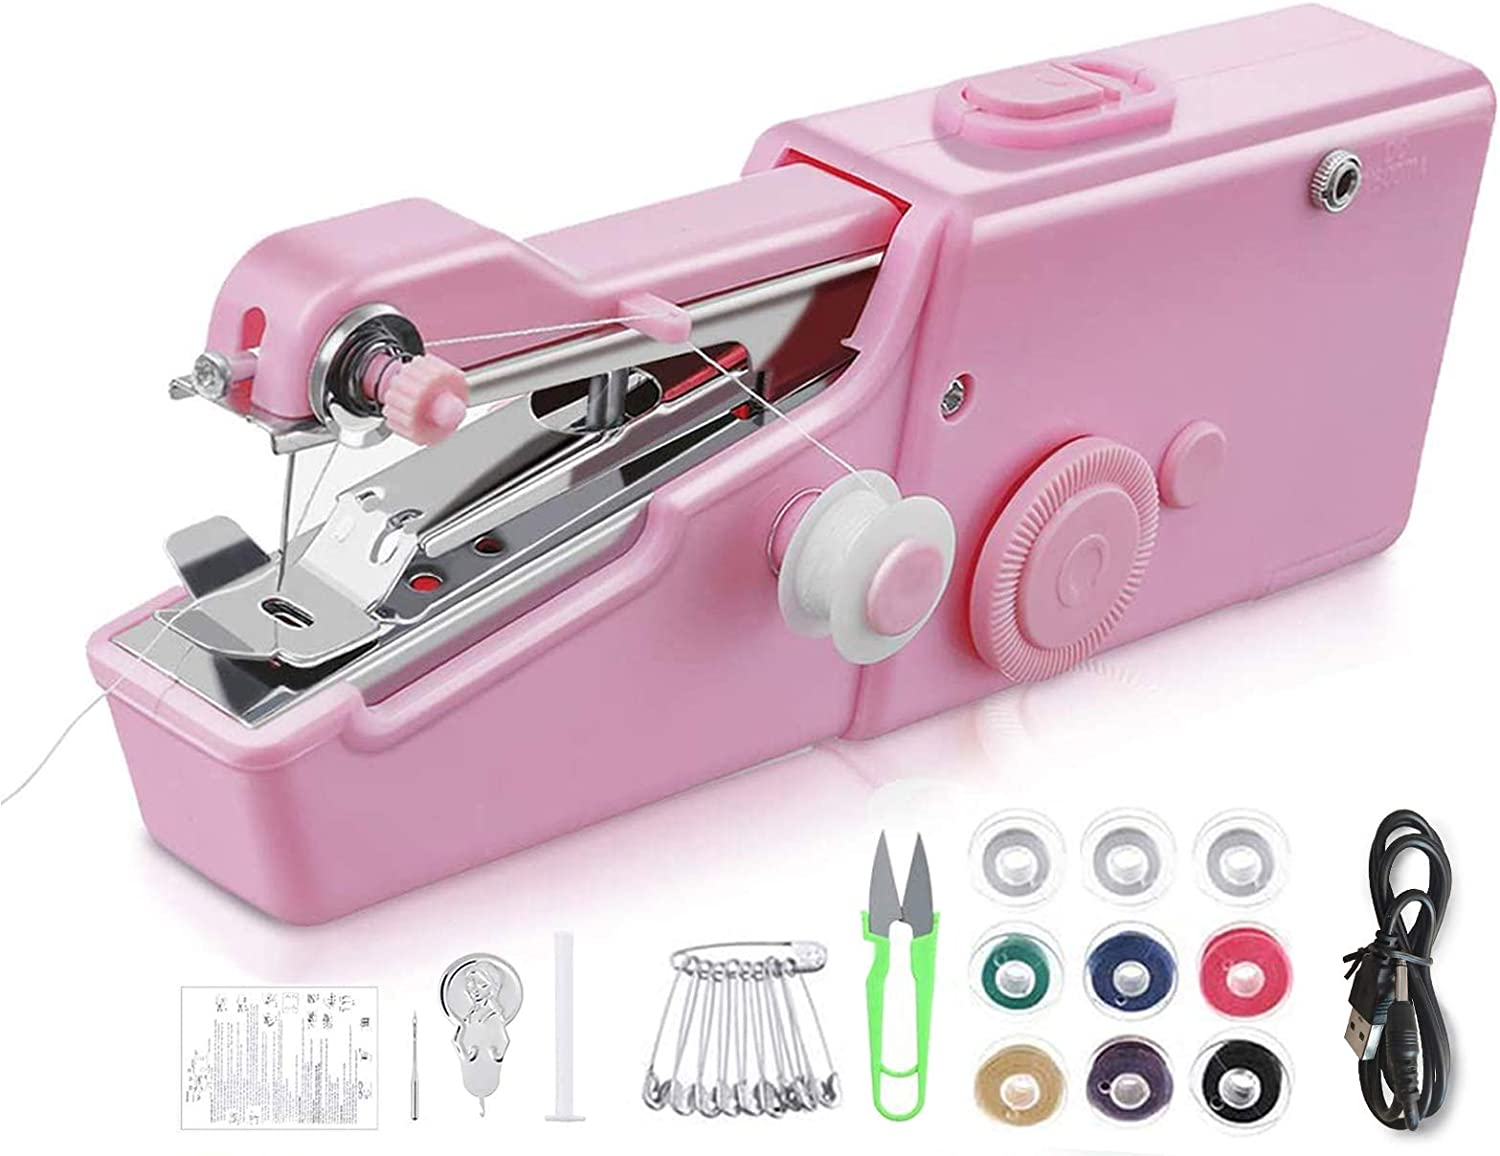 Needle and Threader Use for Travel and Home Mini Portable Sewing Machine Quick Stitch Sewing Tool for Fabric Portable Quick Stitch Tool Mini Sewing Machine 20 x 5 cm